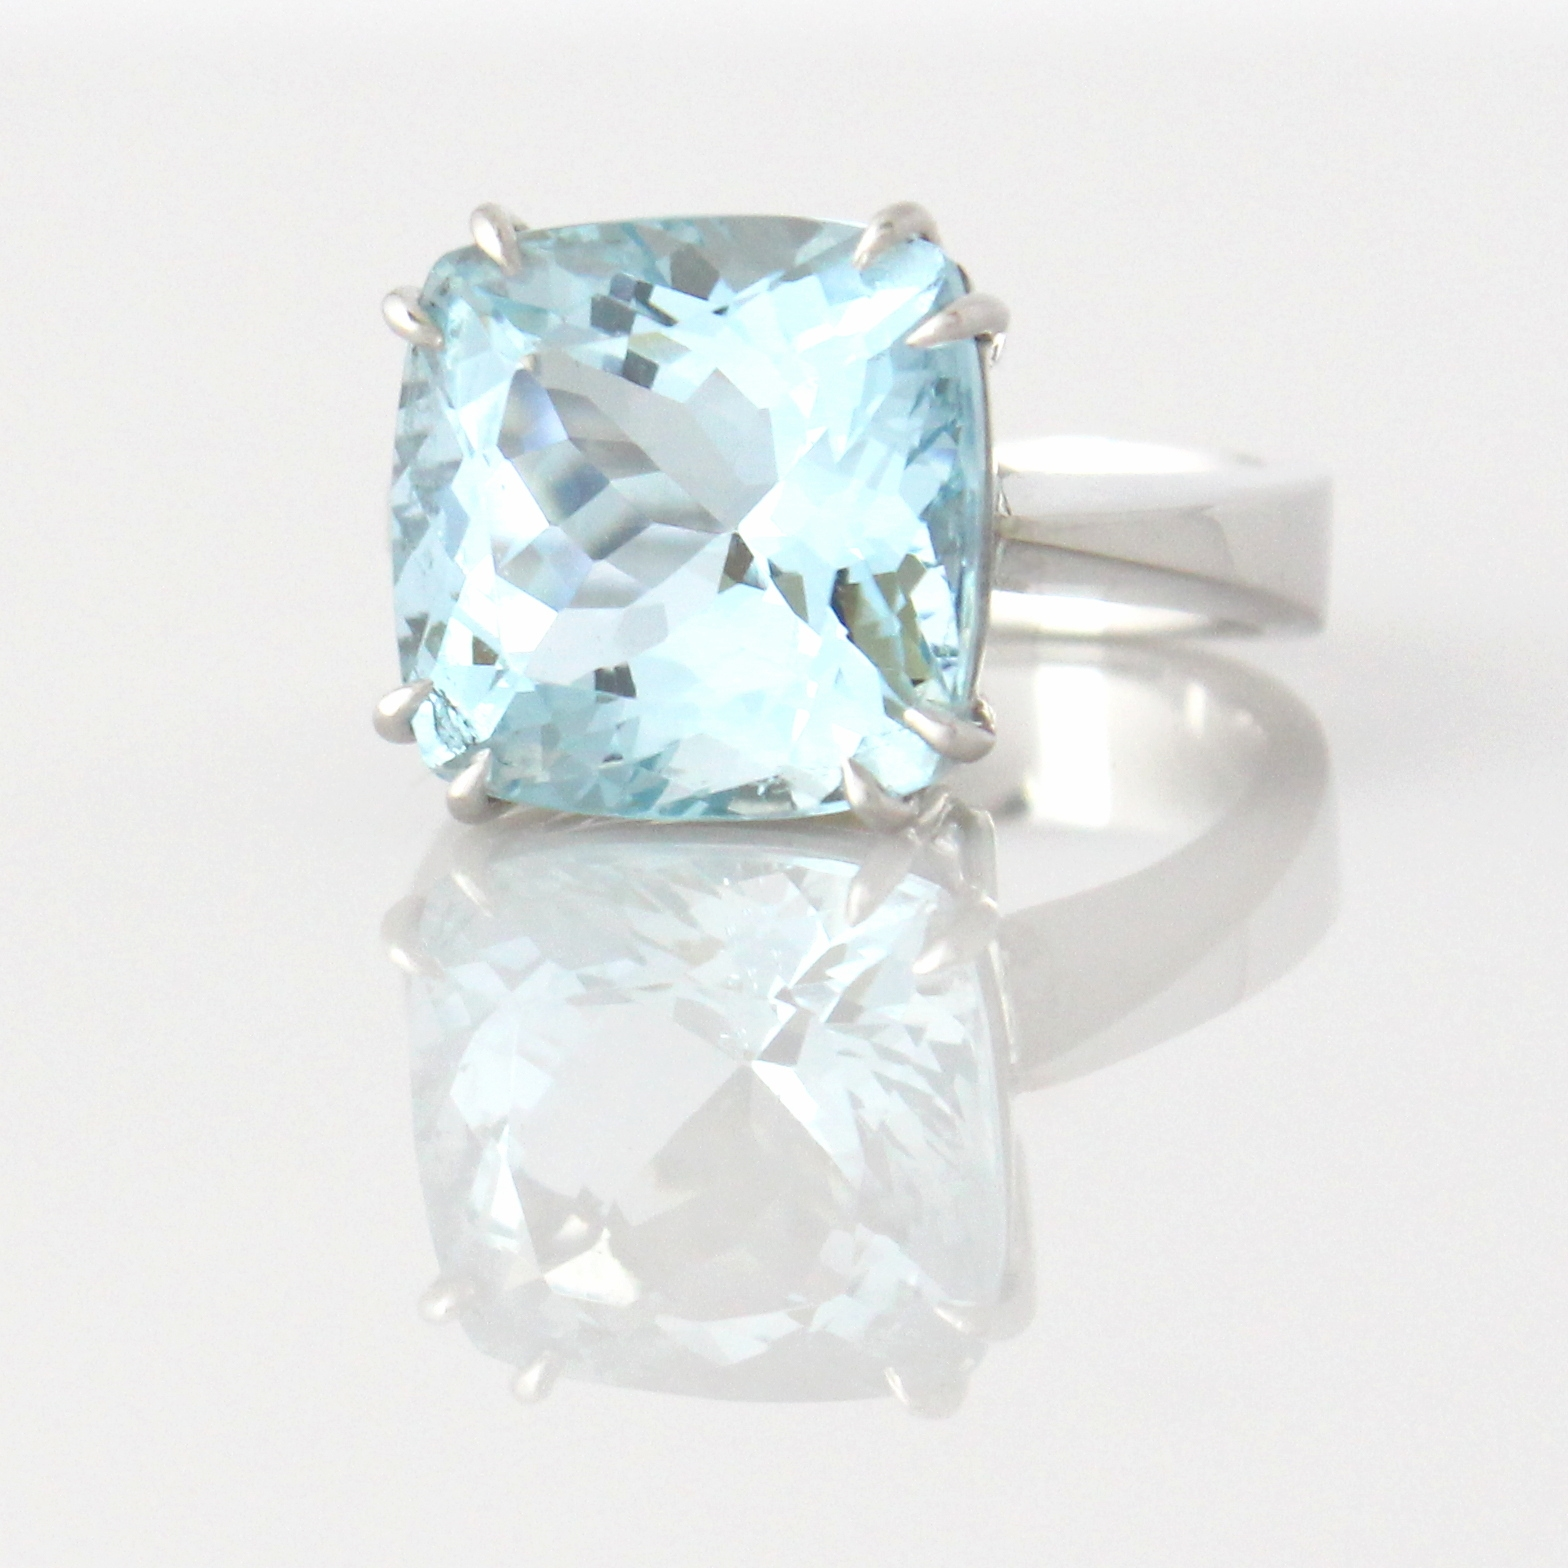 Double claw set aquamarine in white gold ring.